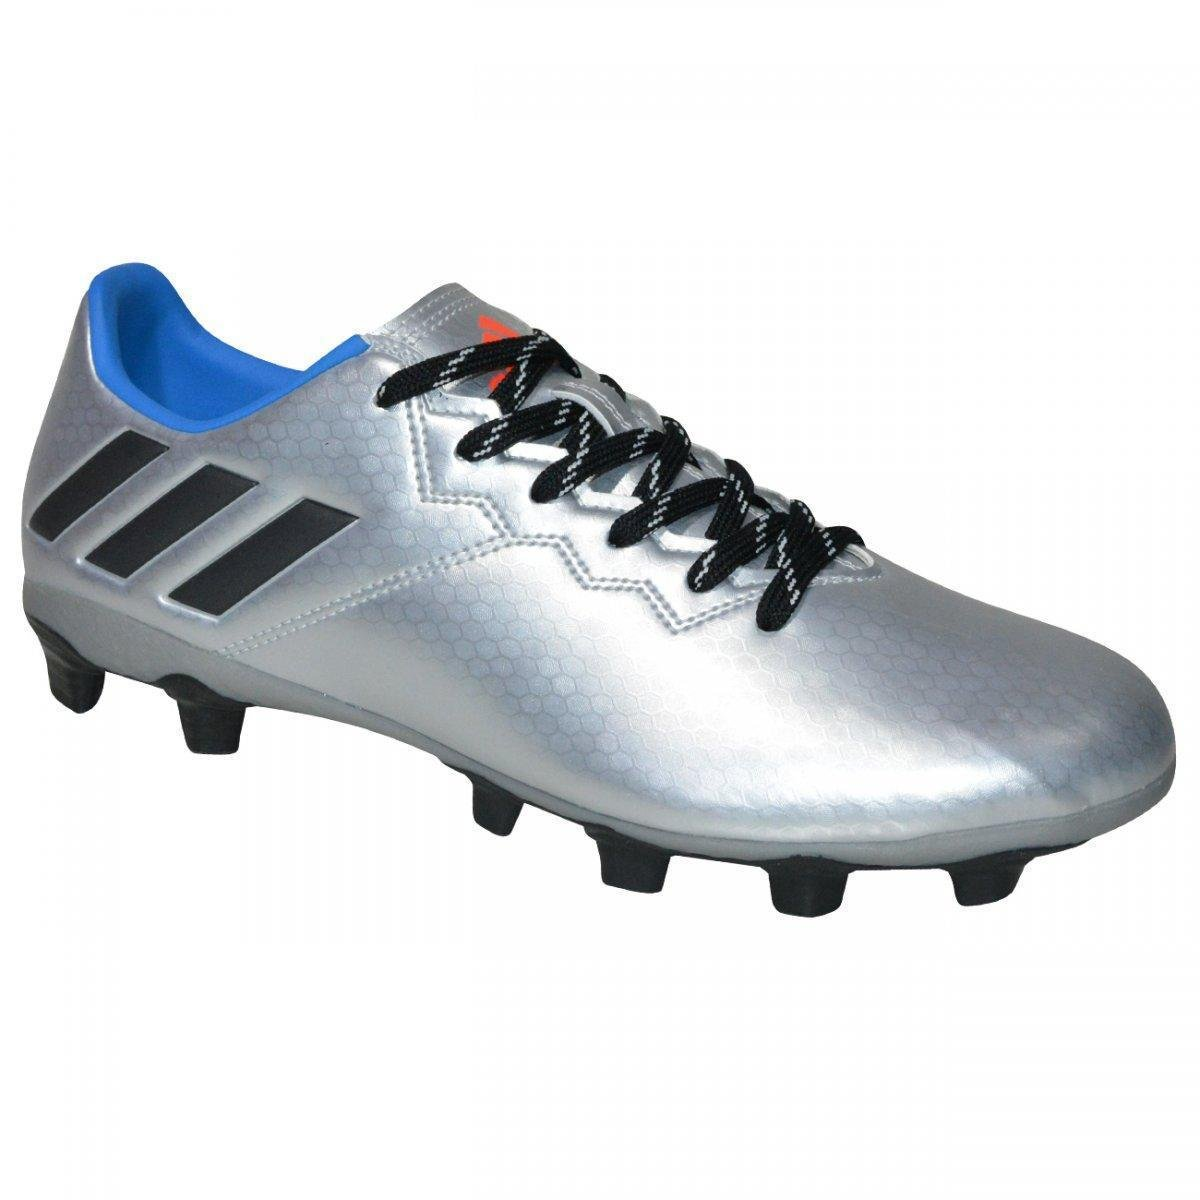 d32f83d23 ... where to buy chuteira adidas netshoes ea8c1 e8629